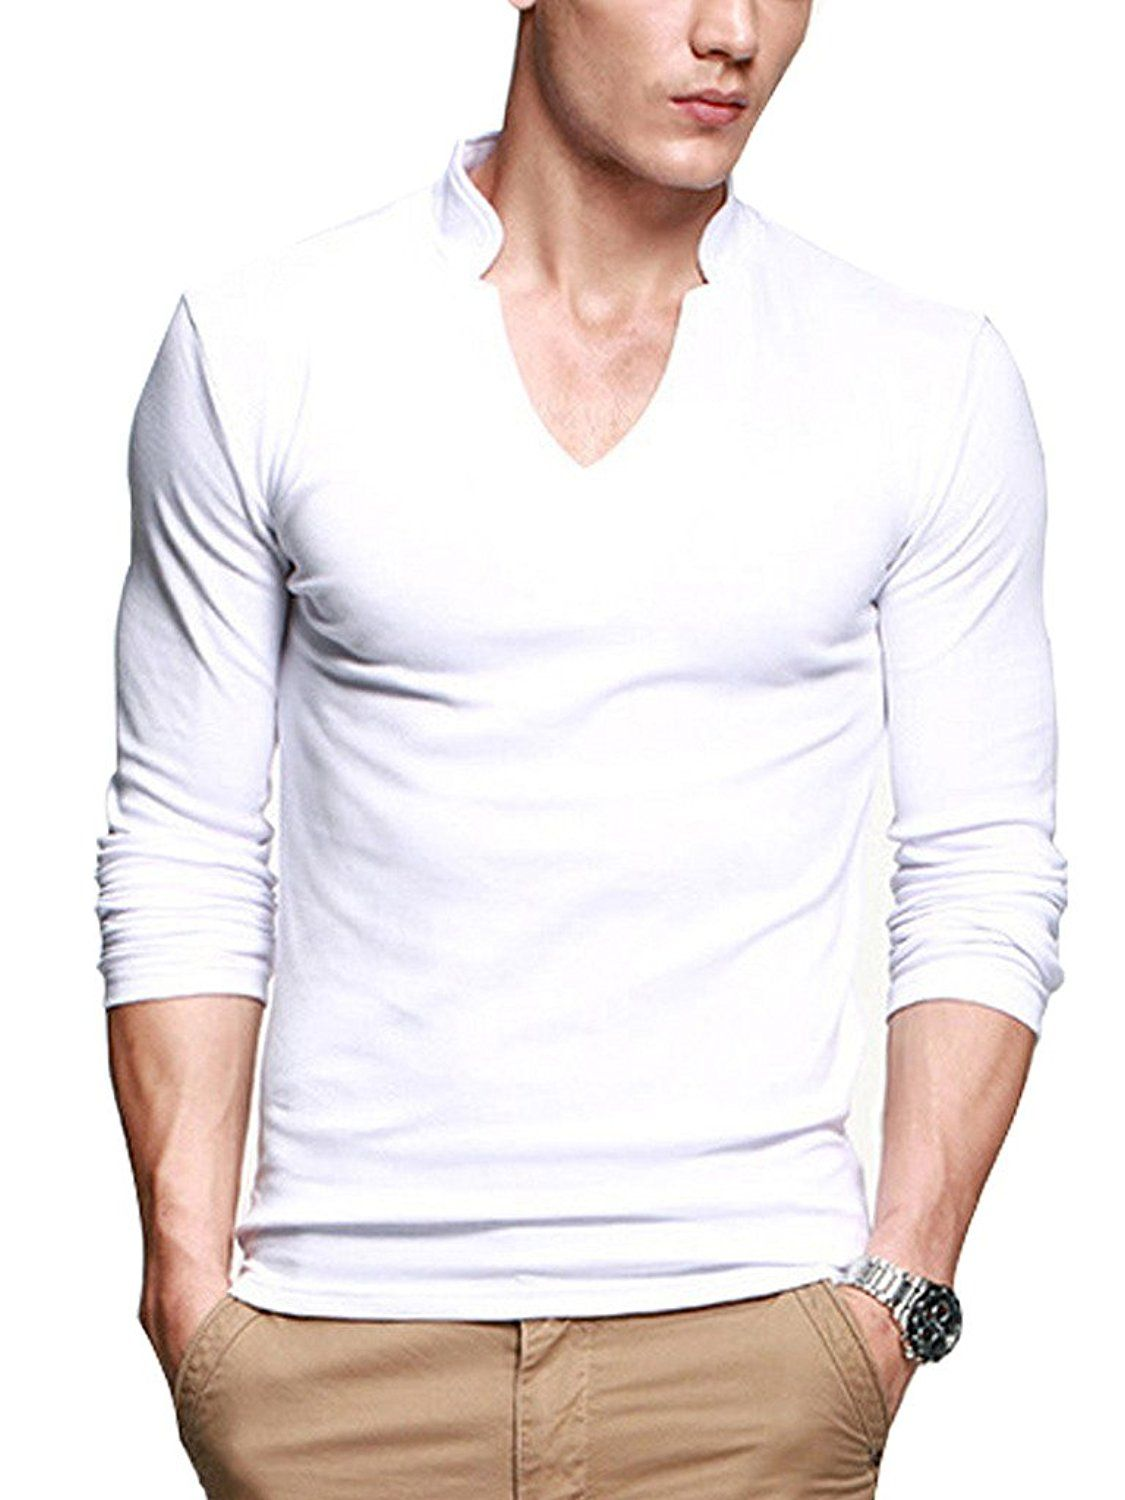 Ilovesia mens t shirts long sleeves cotton for Mens long sleeve casual cotton shirts